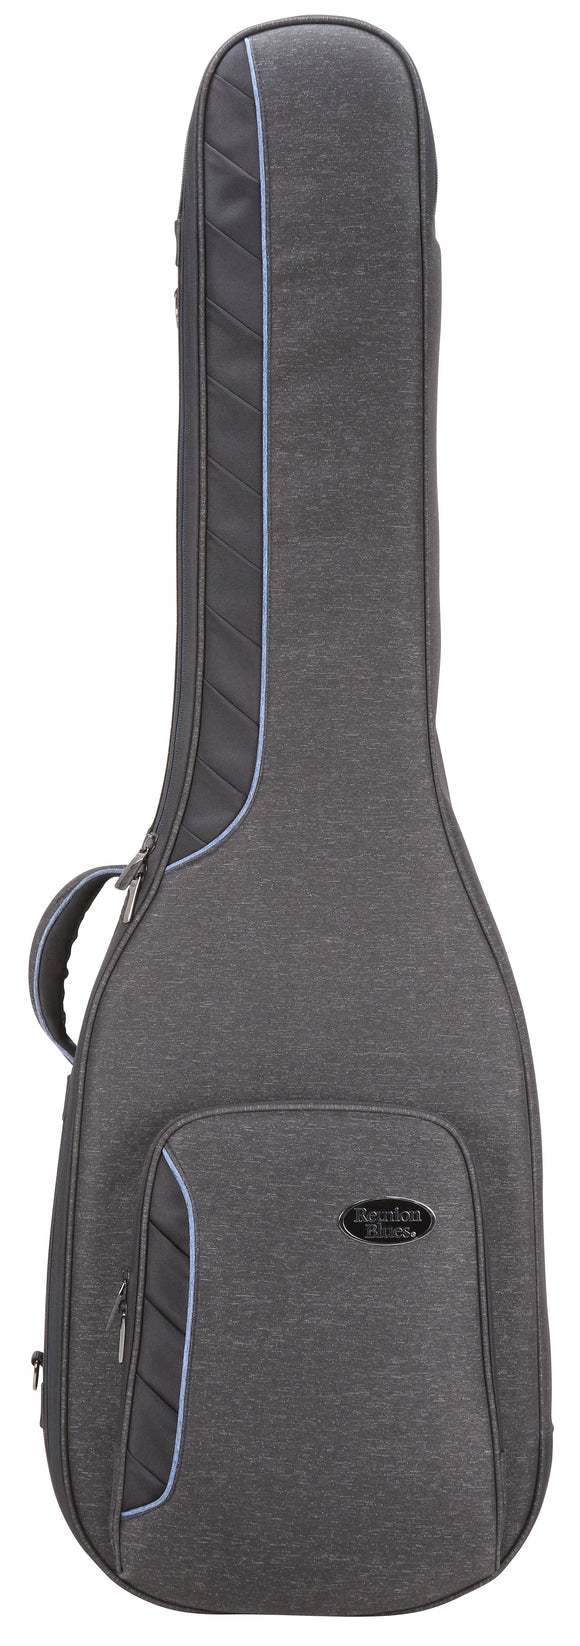 Reunion Blues Continental Voyager Double Electric Bass Guitar Case - Dynamic Music Distribution